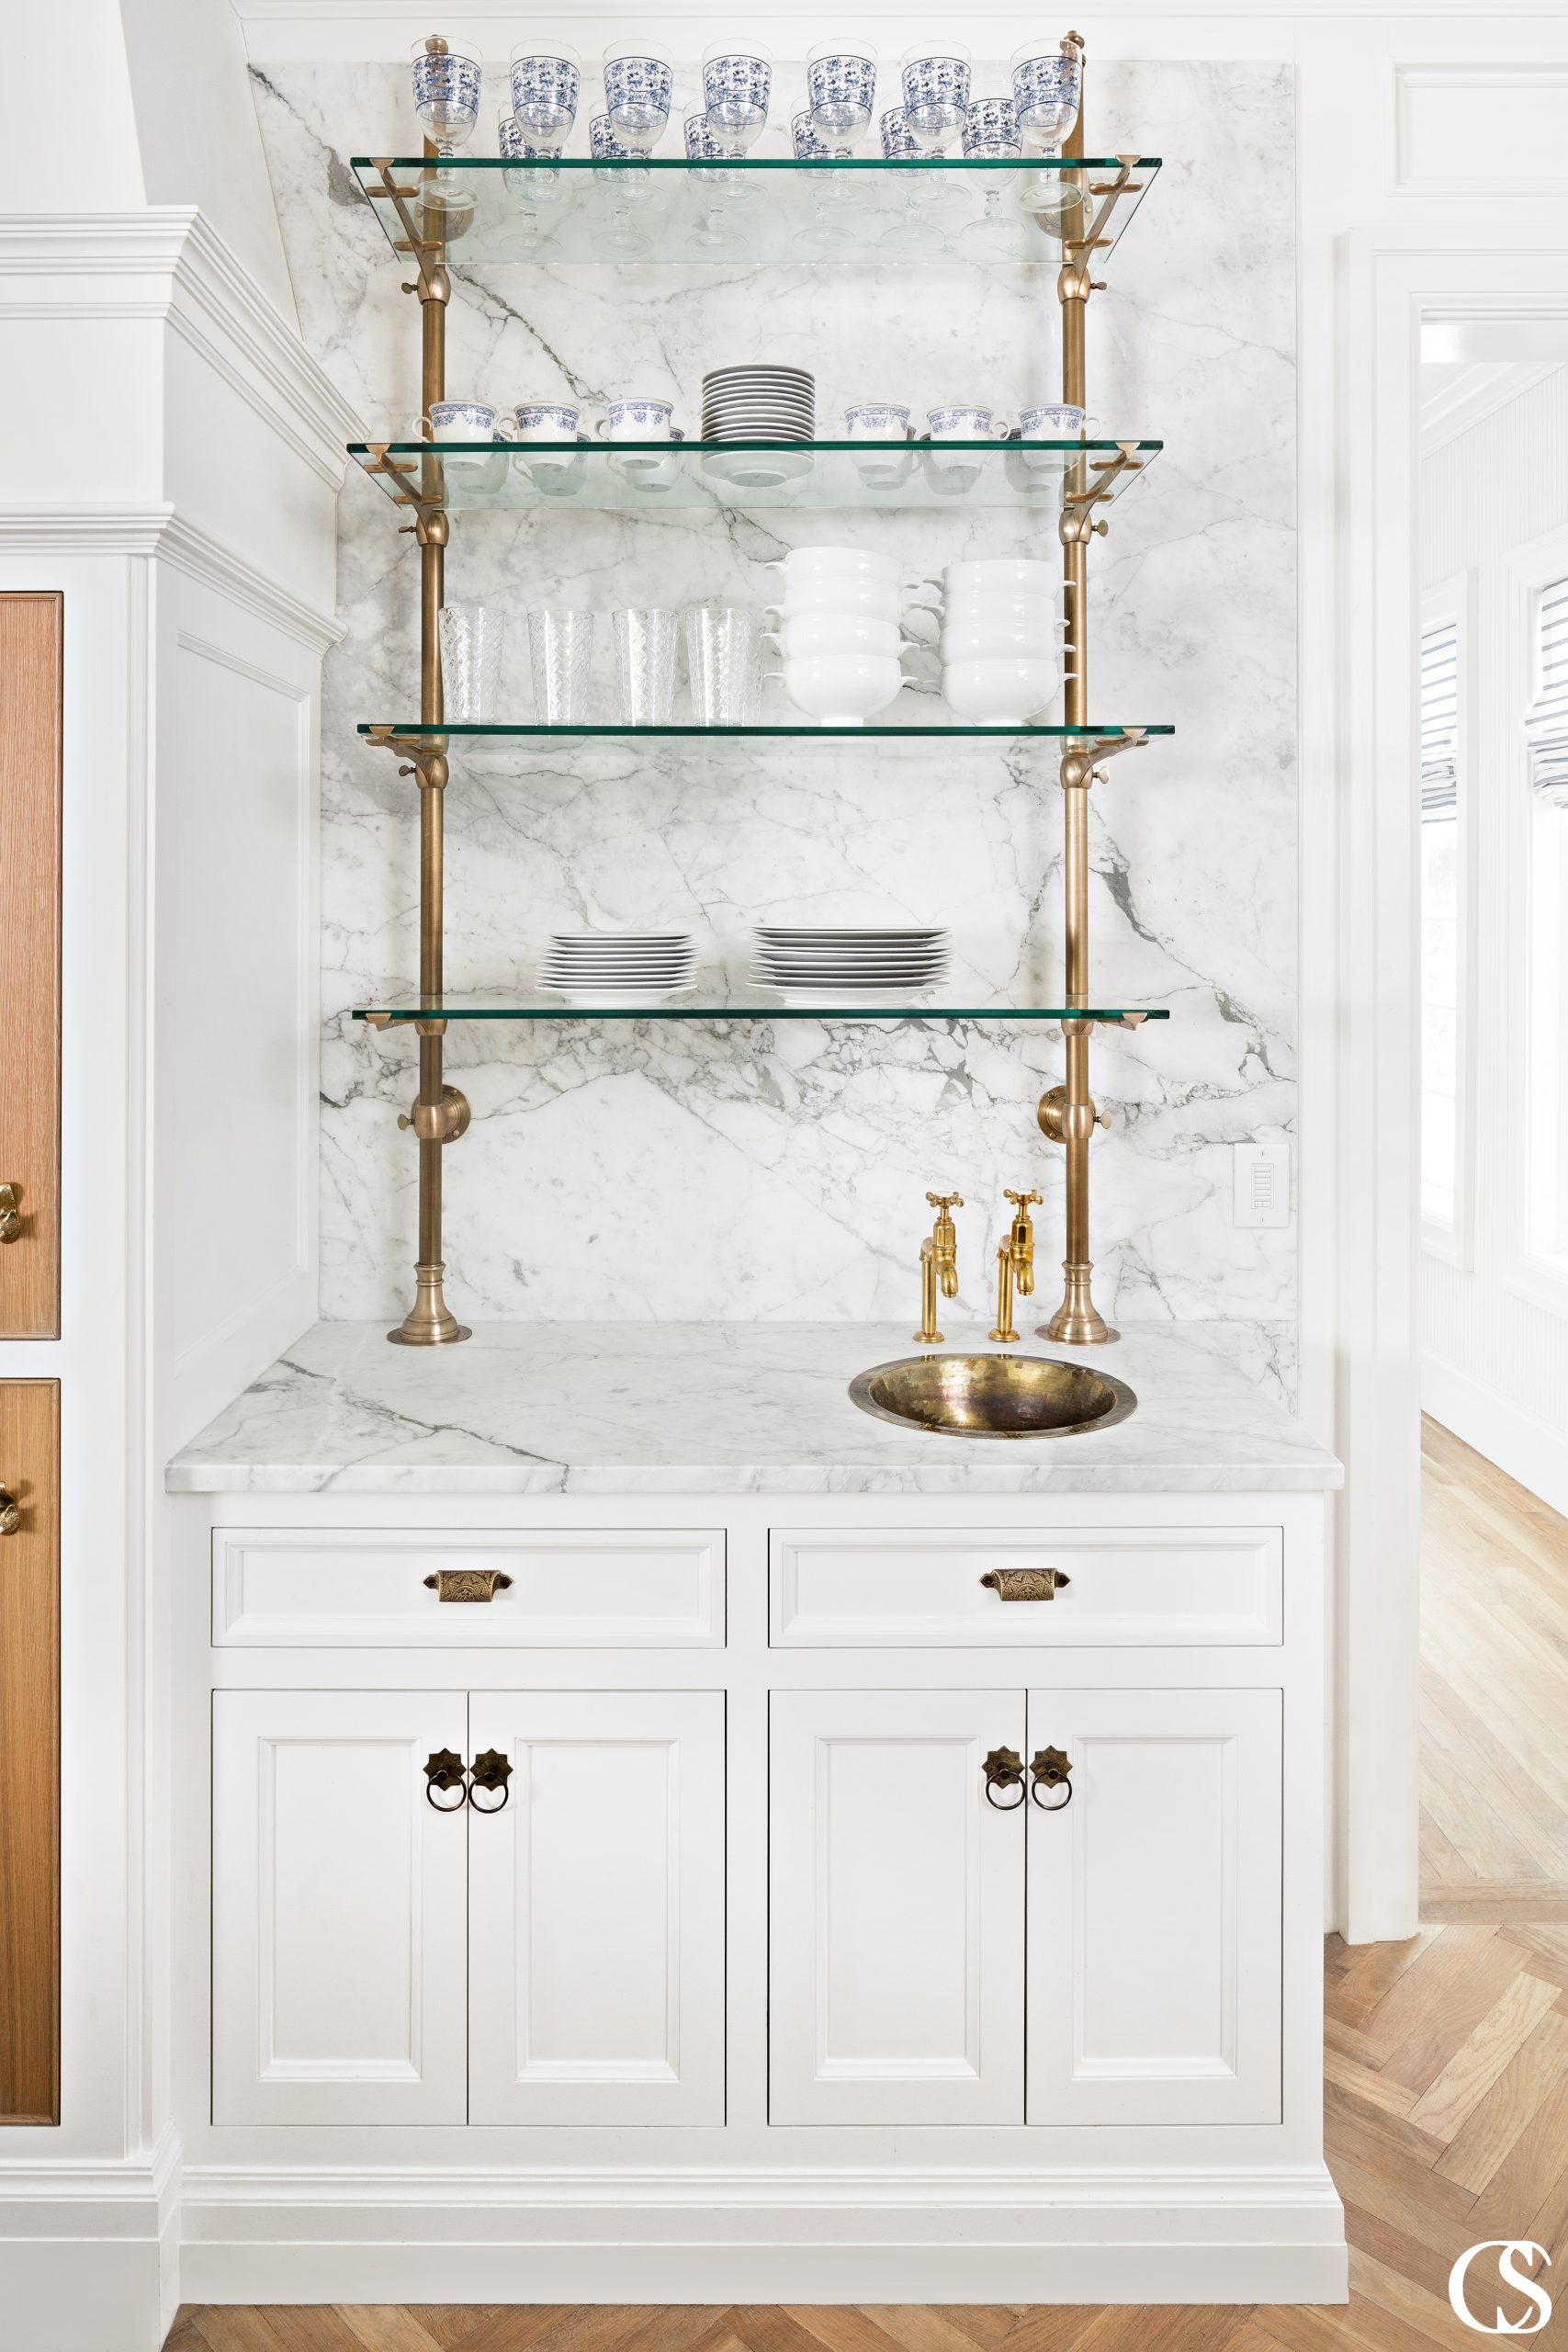 Glass and brass combine here to make a great bar space in this custom kitchen design.